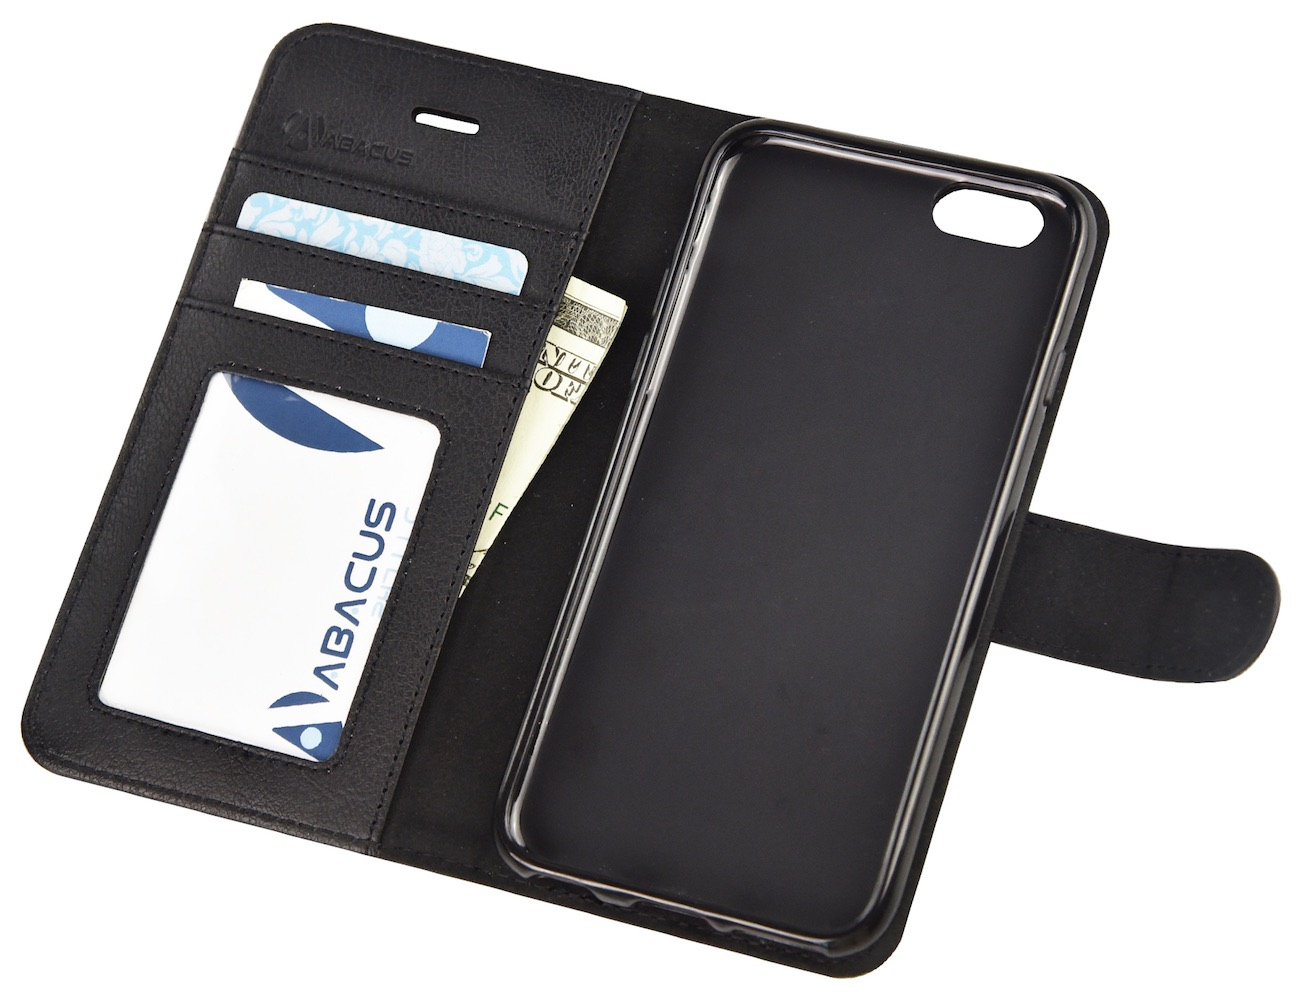 iphone 6 wallets iphone 6s wallet by abacus24 7 187 gadget flow 11445